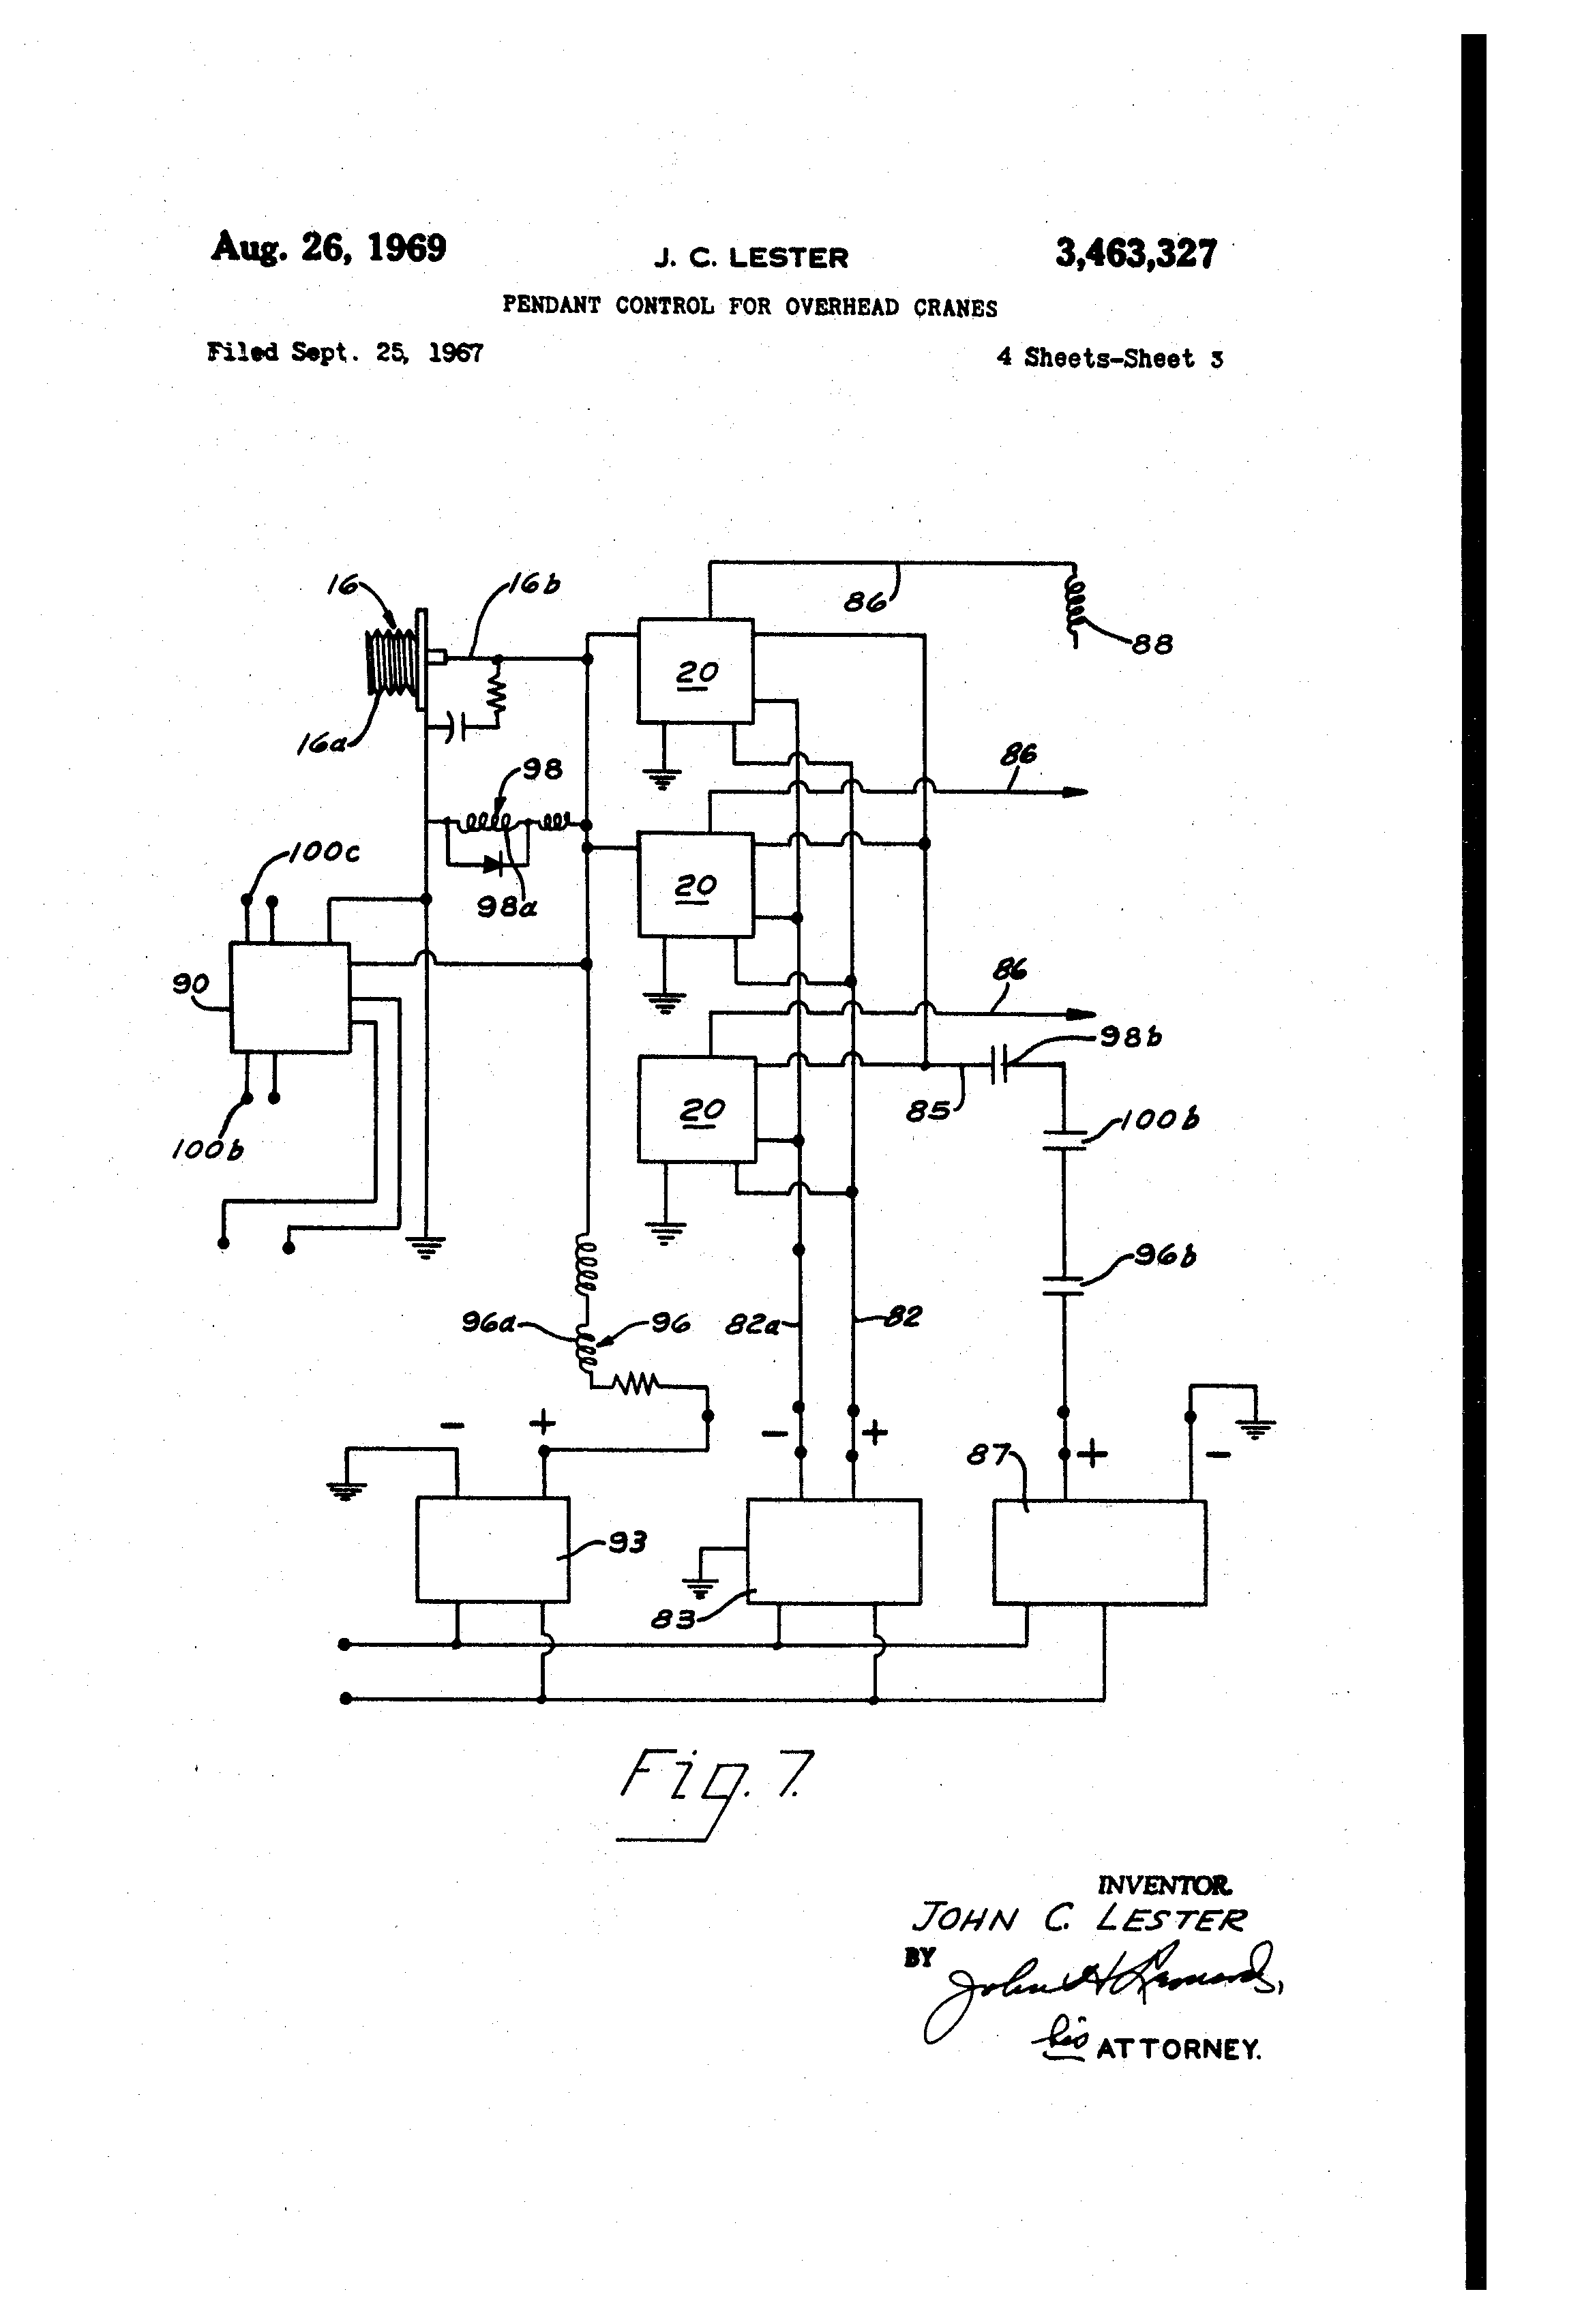 US3463327 2 patent us3463327 pendant control for overhead cranes google demag crane wiring diagram at reclaimingppi.co